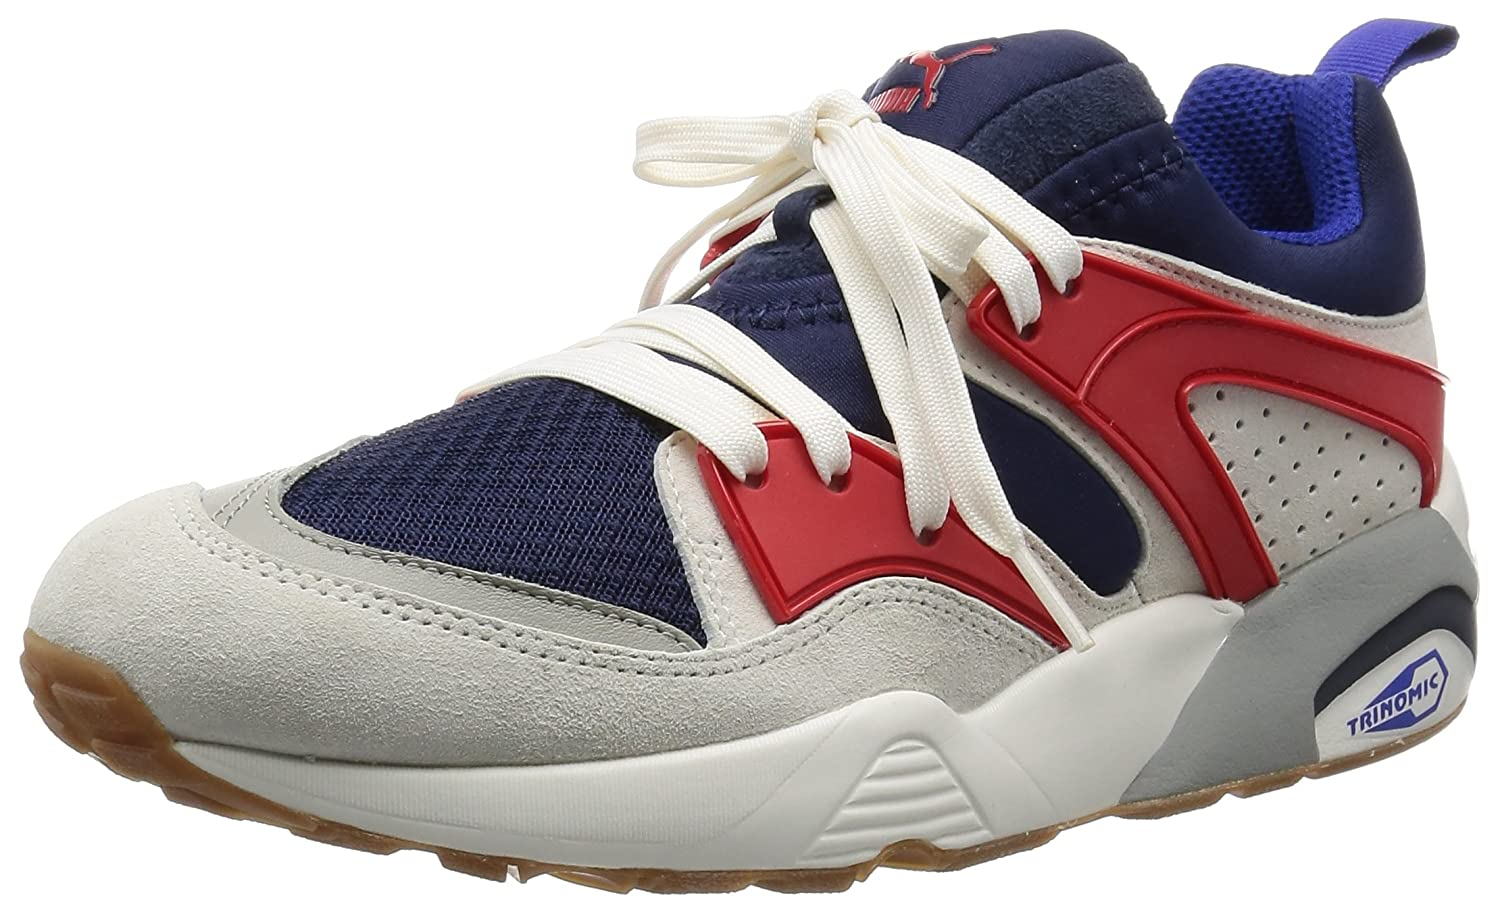 Puma - Blaze of Glory Athletic - Sneakers Uomo  Amazon.co.uk  Shoes   Bags 96ae2ae23275